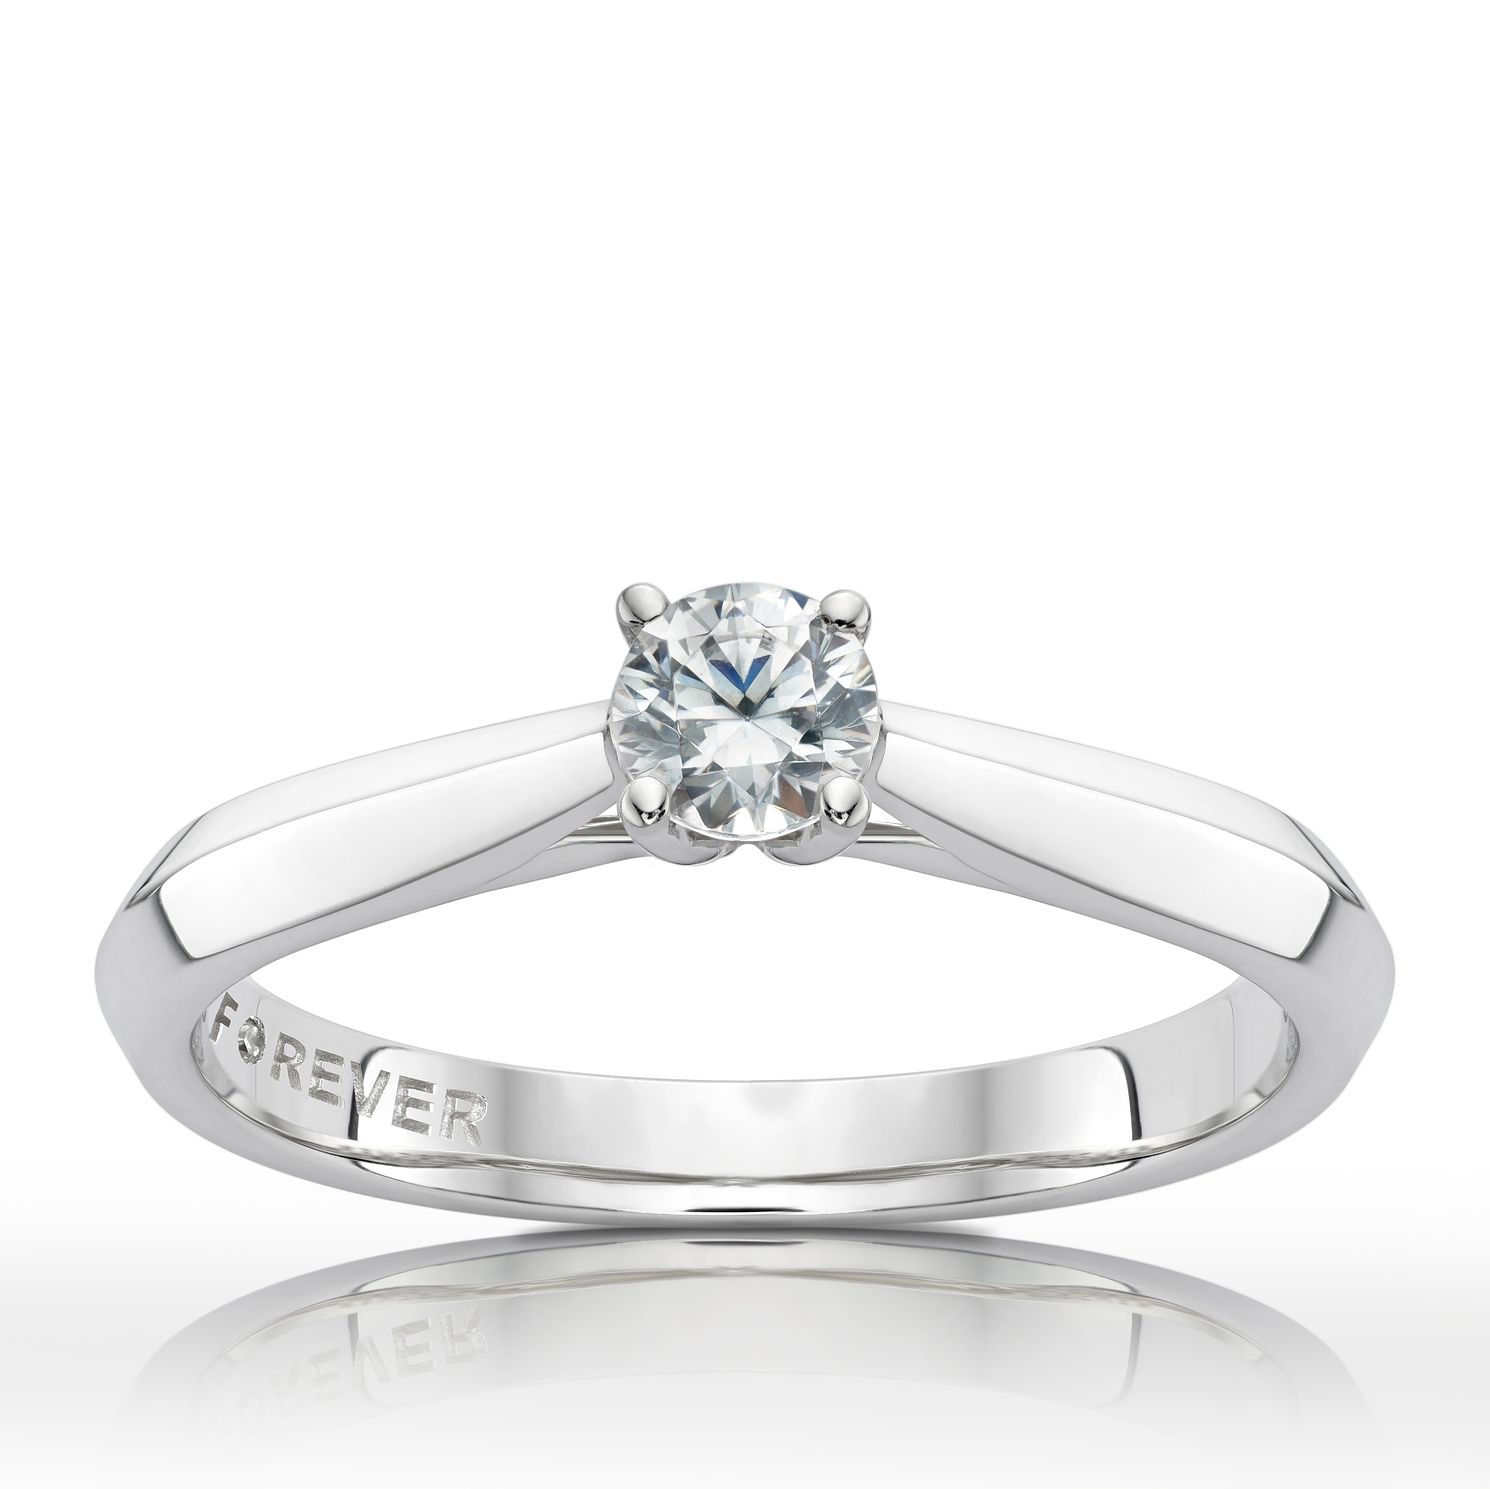 Platinum 1/4ct Forever Diamond Solitaire Ring - Product number 2207184